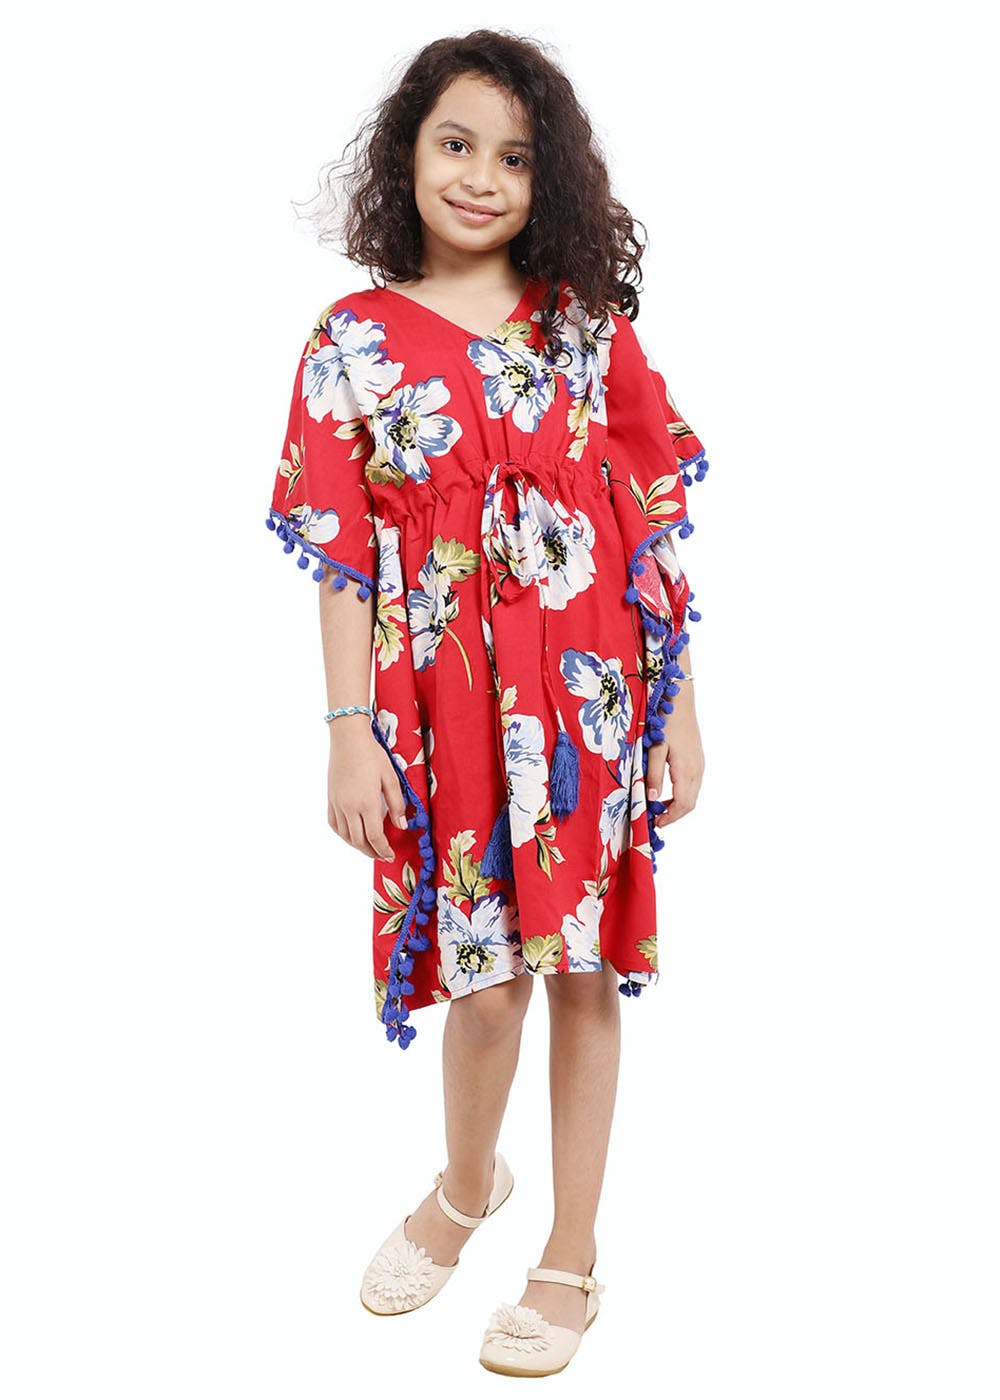 Floral Kaftan Dress with Pom Pom Lace and Tassels - Red